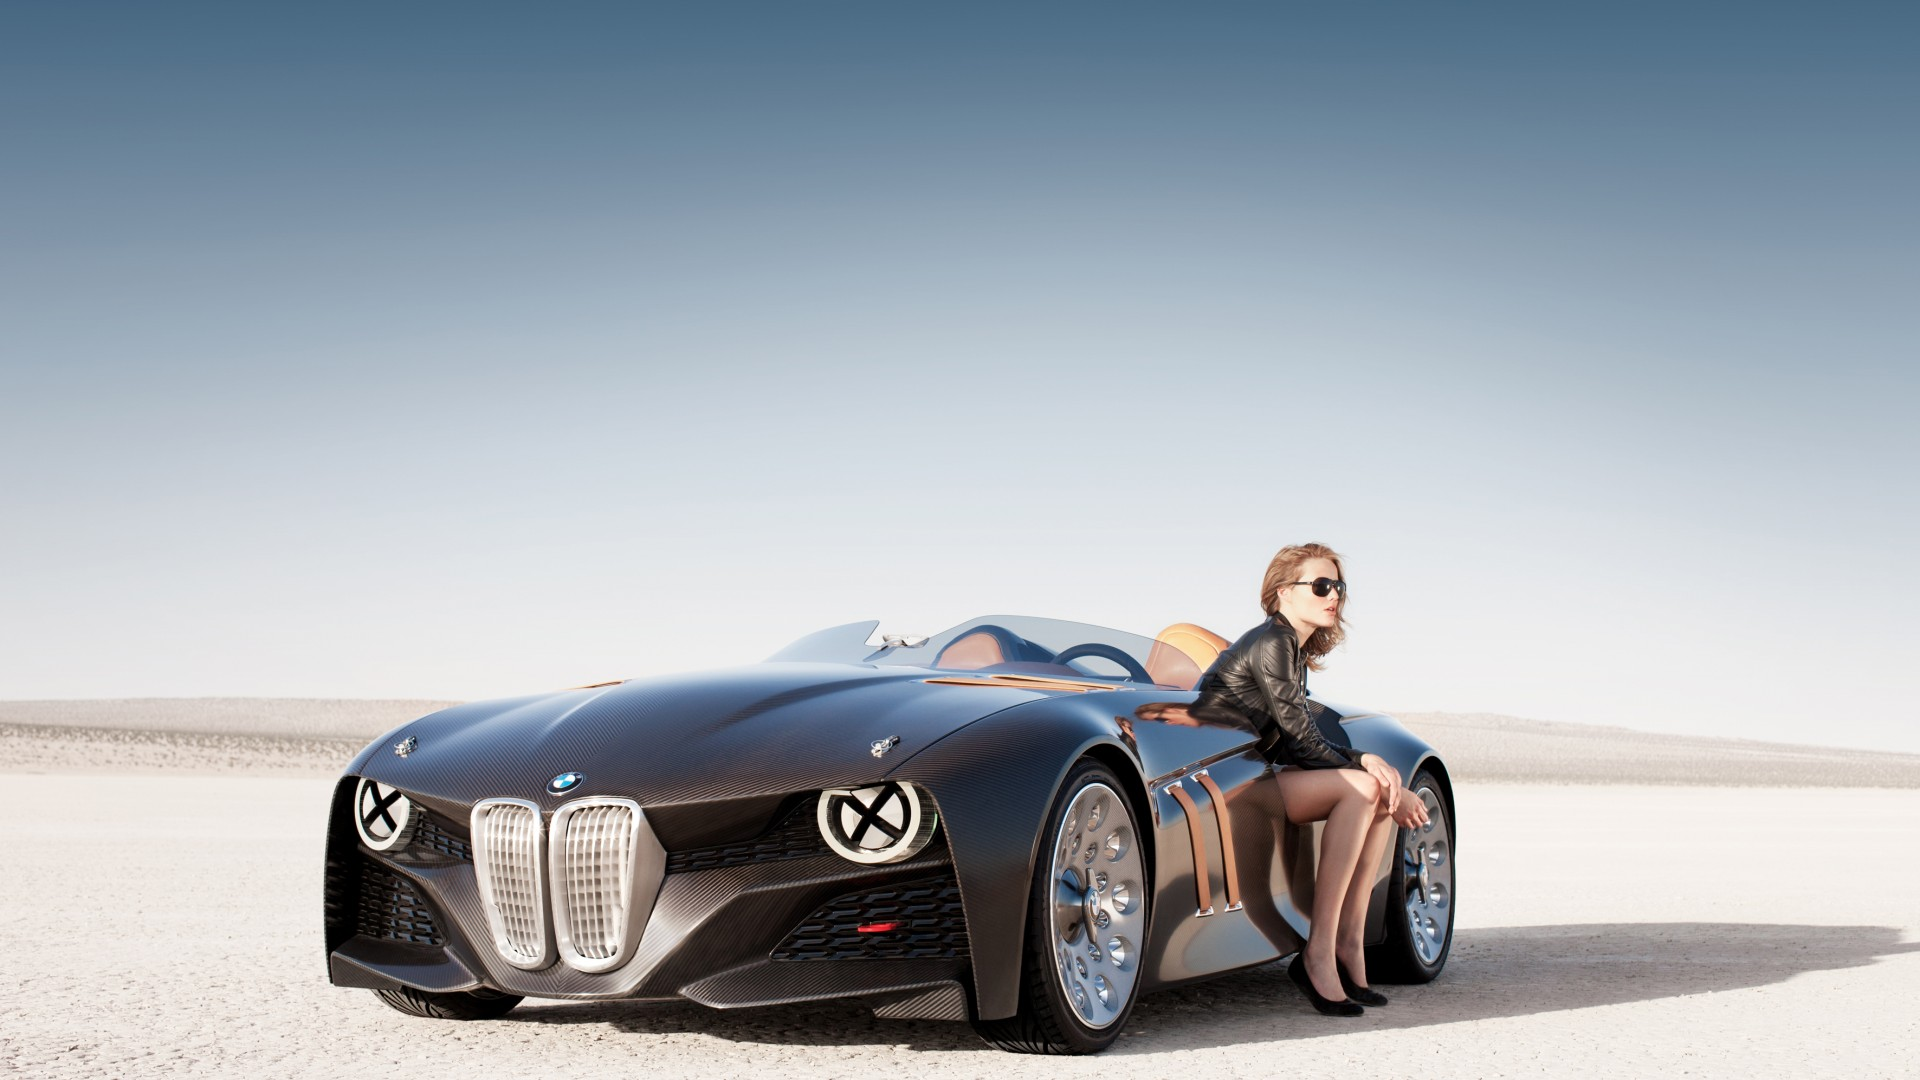 БМВ, кабриолет, концепт, суперкар, обзор, BMW 328, Hommage, concept, supercar, luxury cars, sports car, review, test drive, speed, cabriolet, front (horizontal)